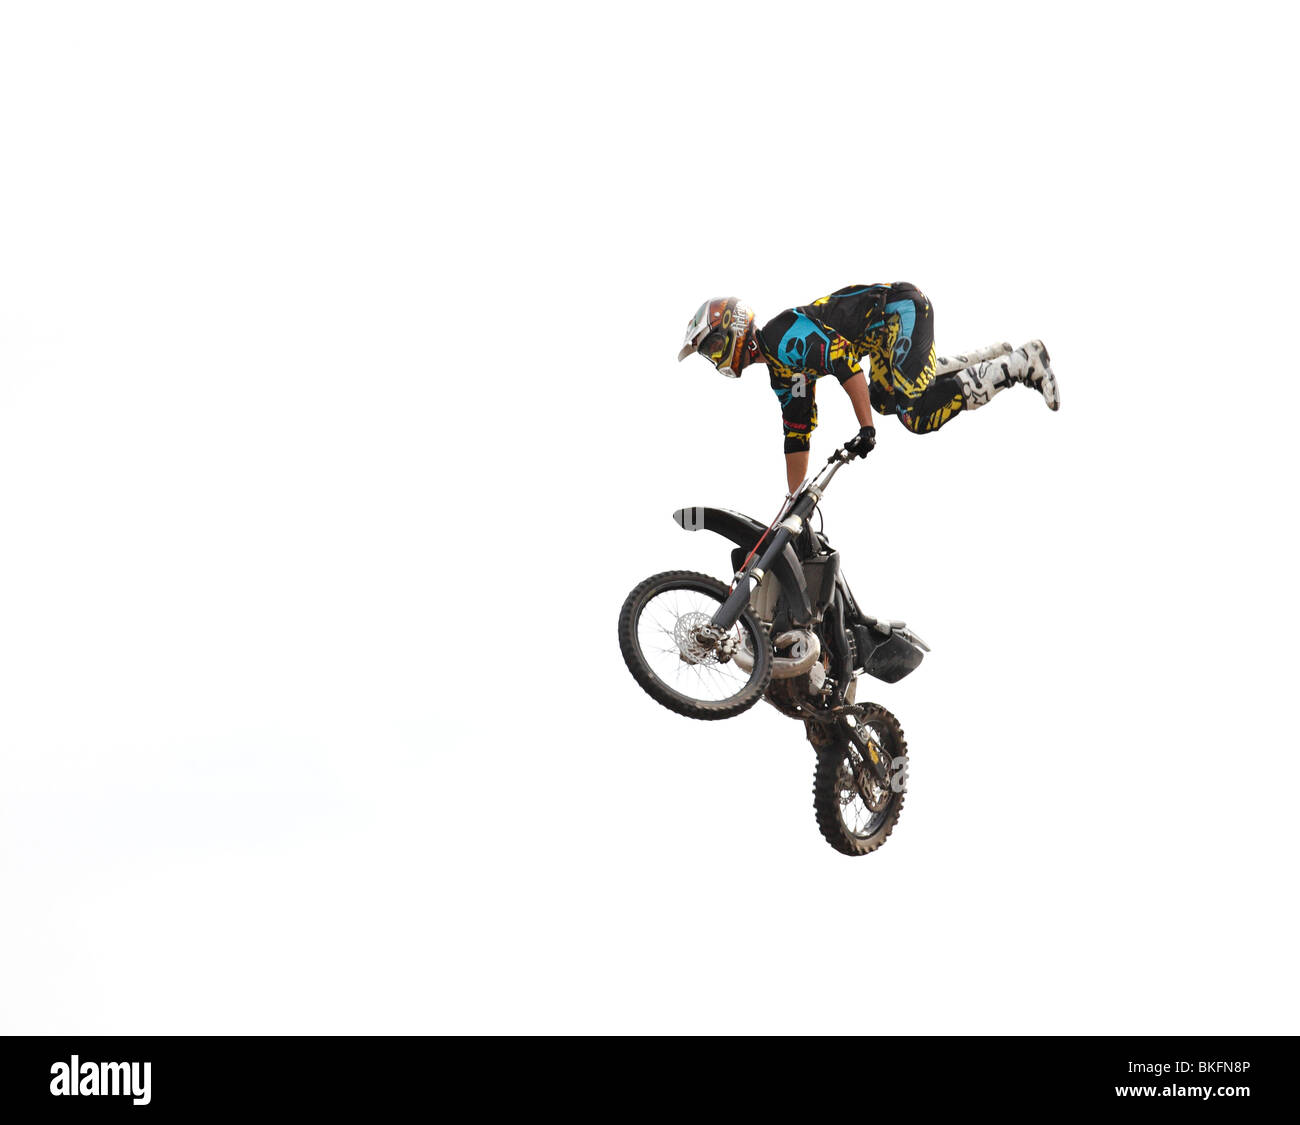 Freestyle motorbike in the air. - Stock Image